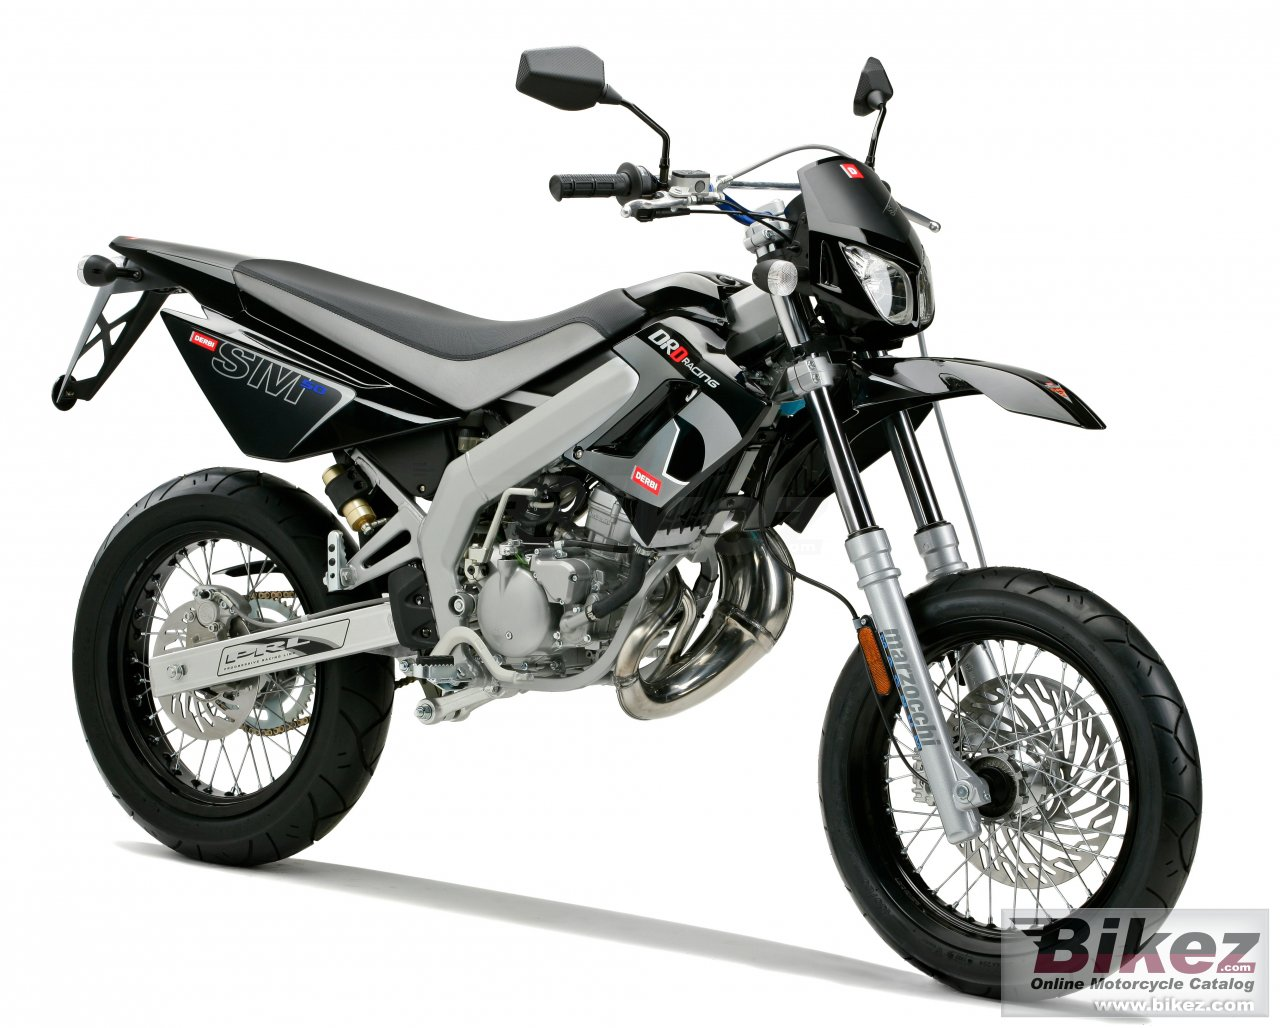 Big Derbi drd racing 50 sm picture and wallpaper from Bikez.com